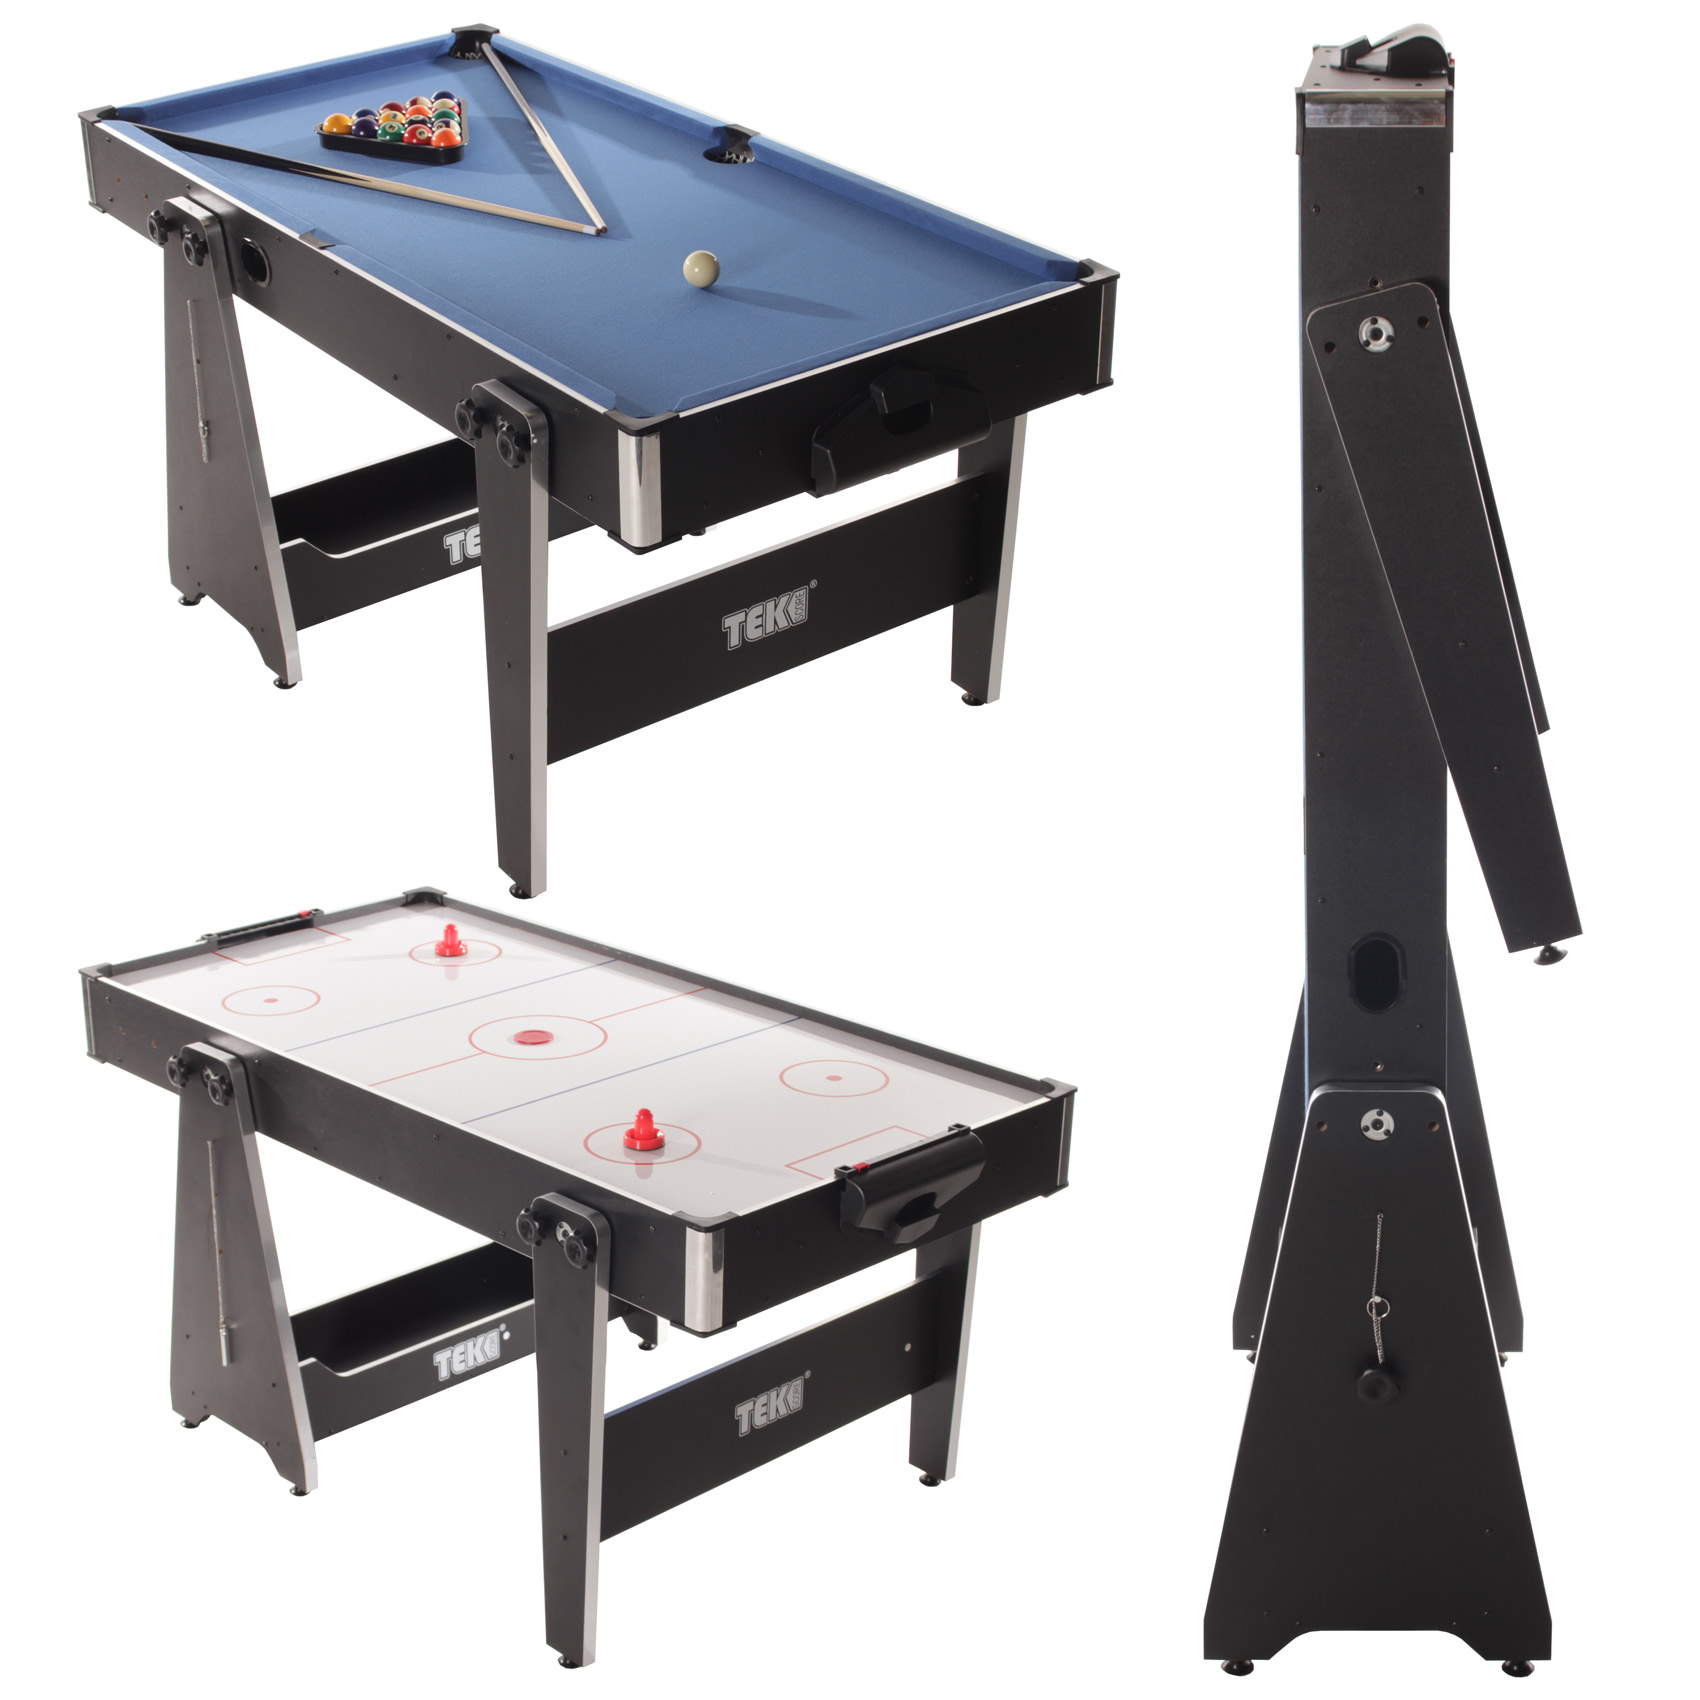 Beau Tekscore 5 Foot Folding Leg Multi Games Table